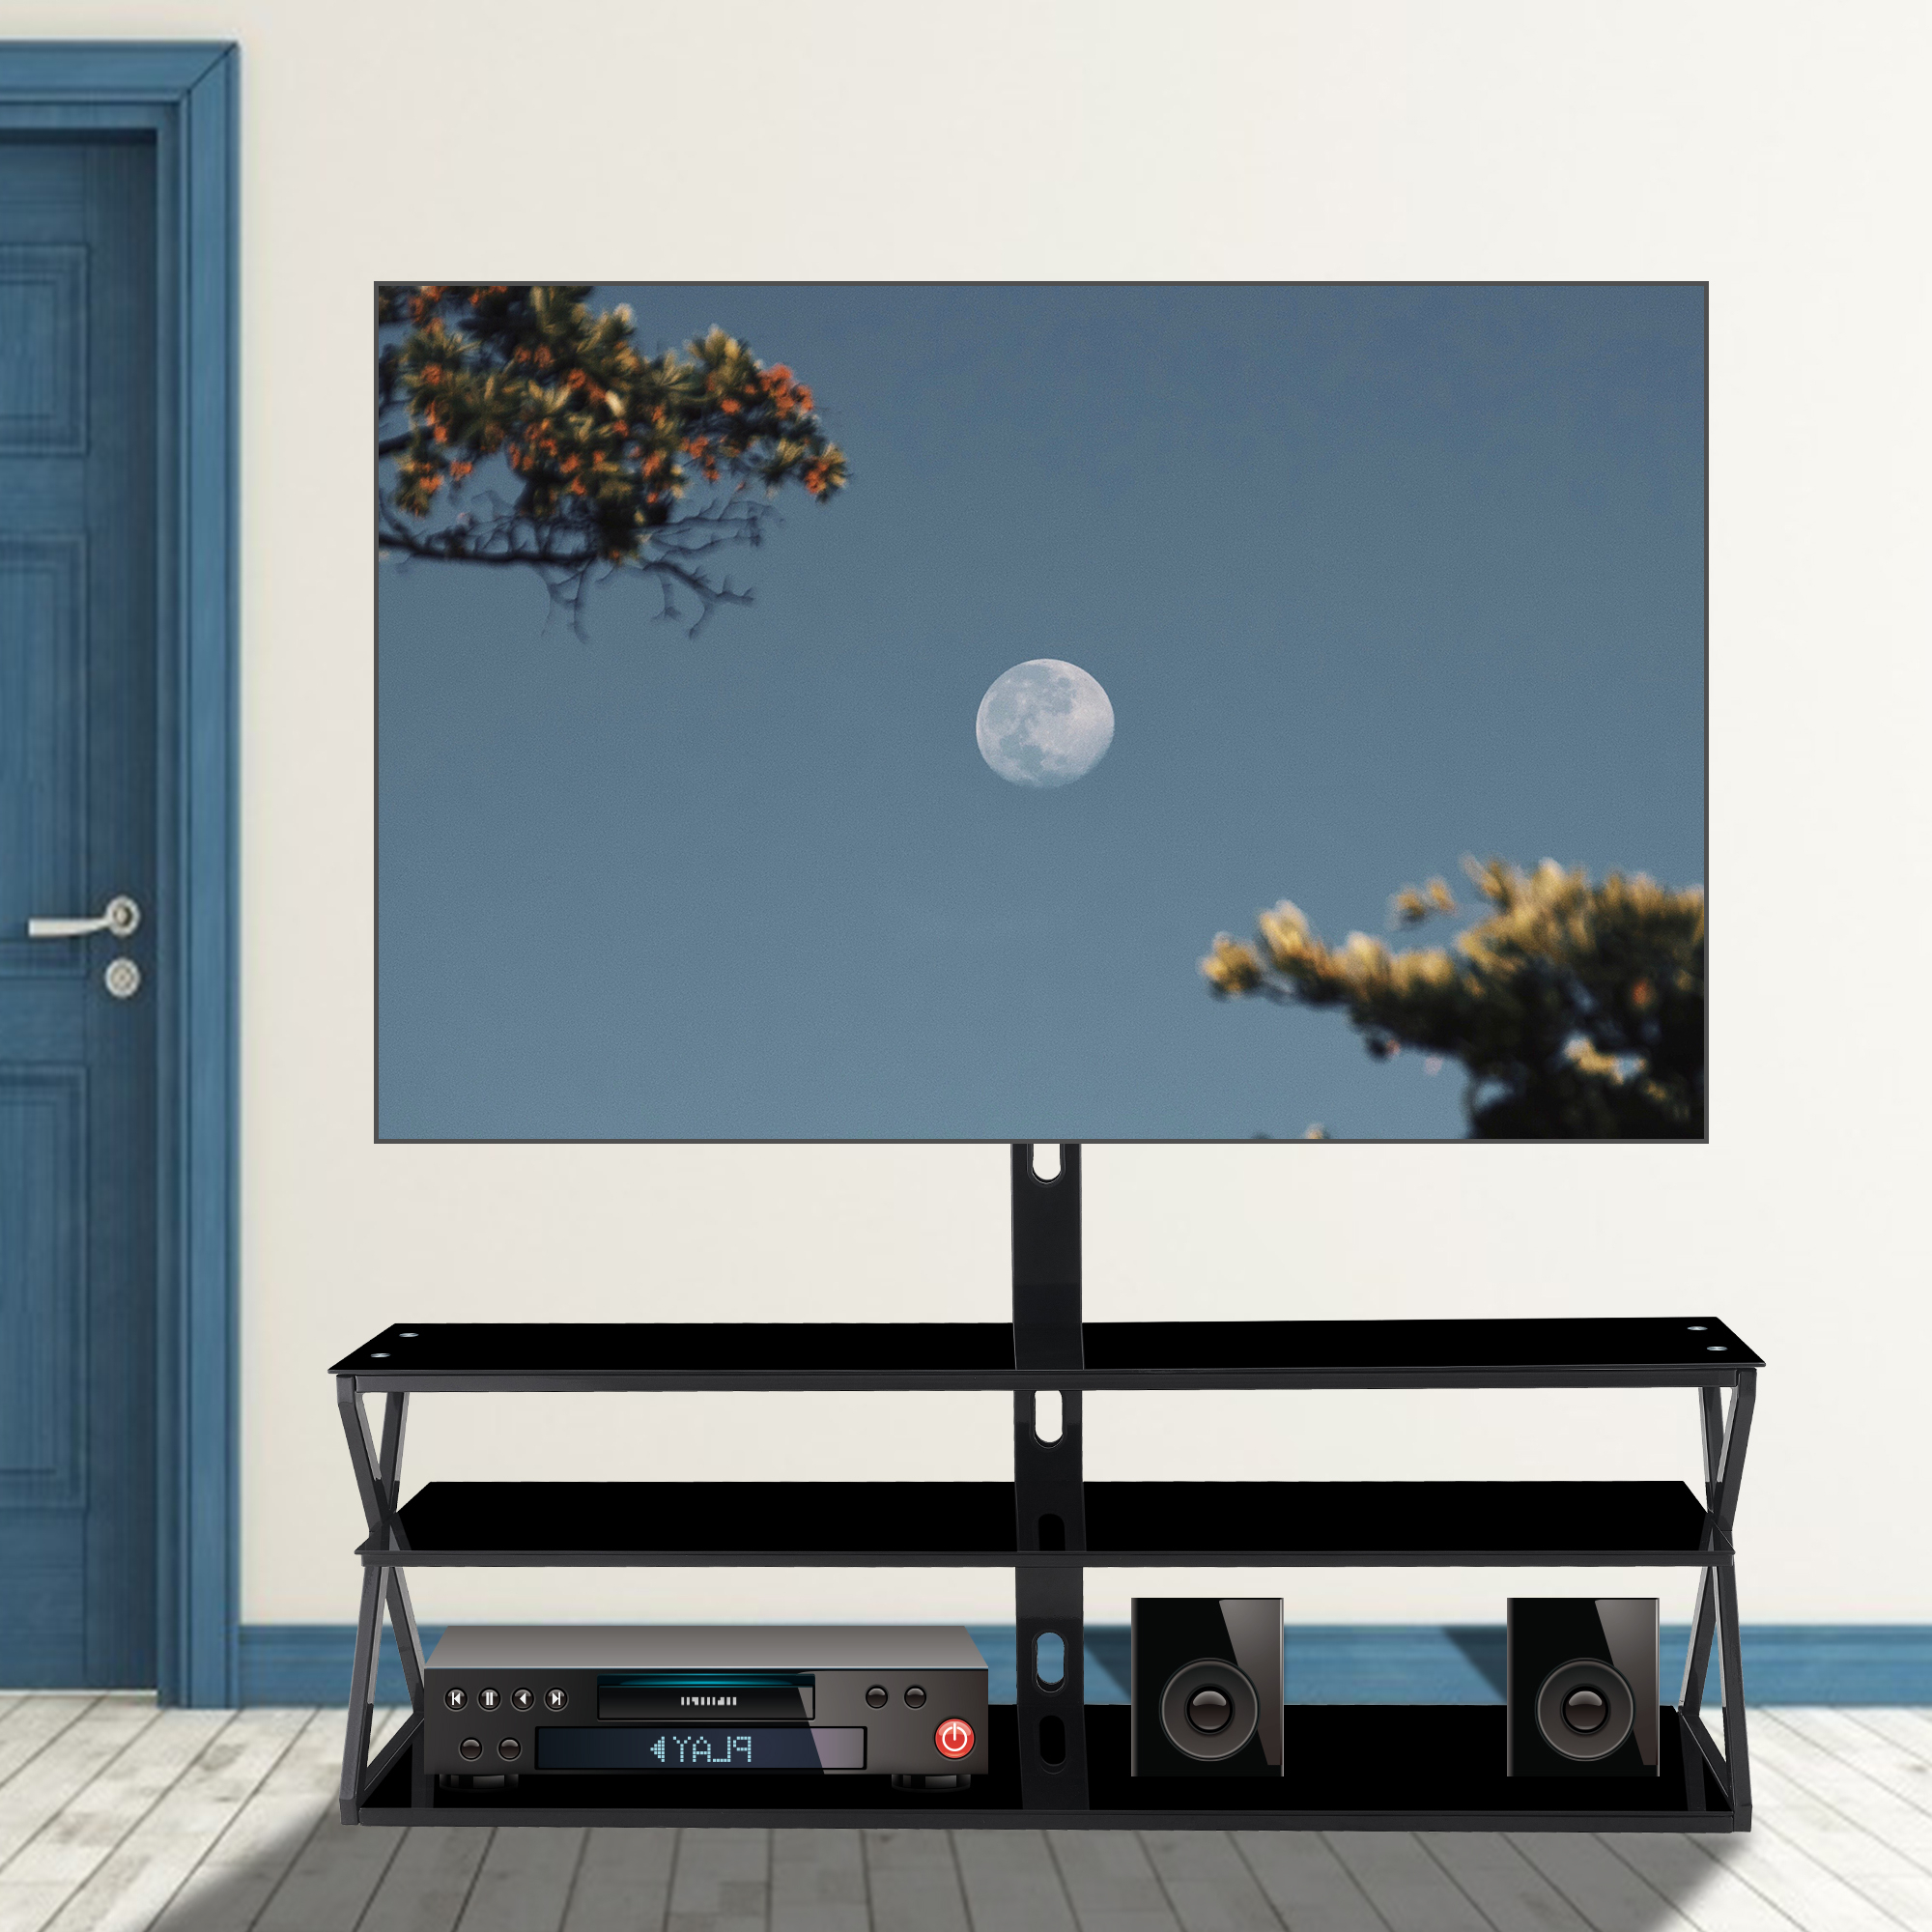 """Watnature Black Tv Stand With Mount For Tvs Up To 65 Intended For Whalen Furniture Black Tv Stands For 65"""" Flat Panel Tvs With Tempered Glass Shelves (View 14 of 20)"""